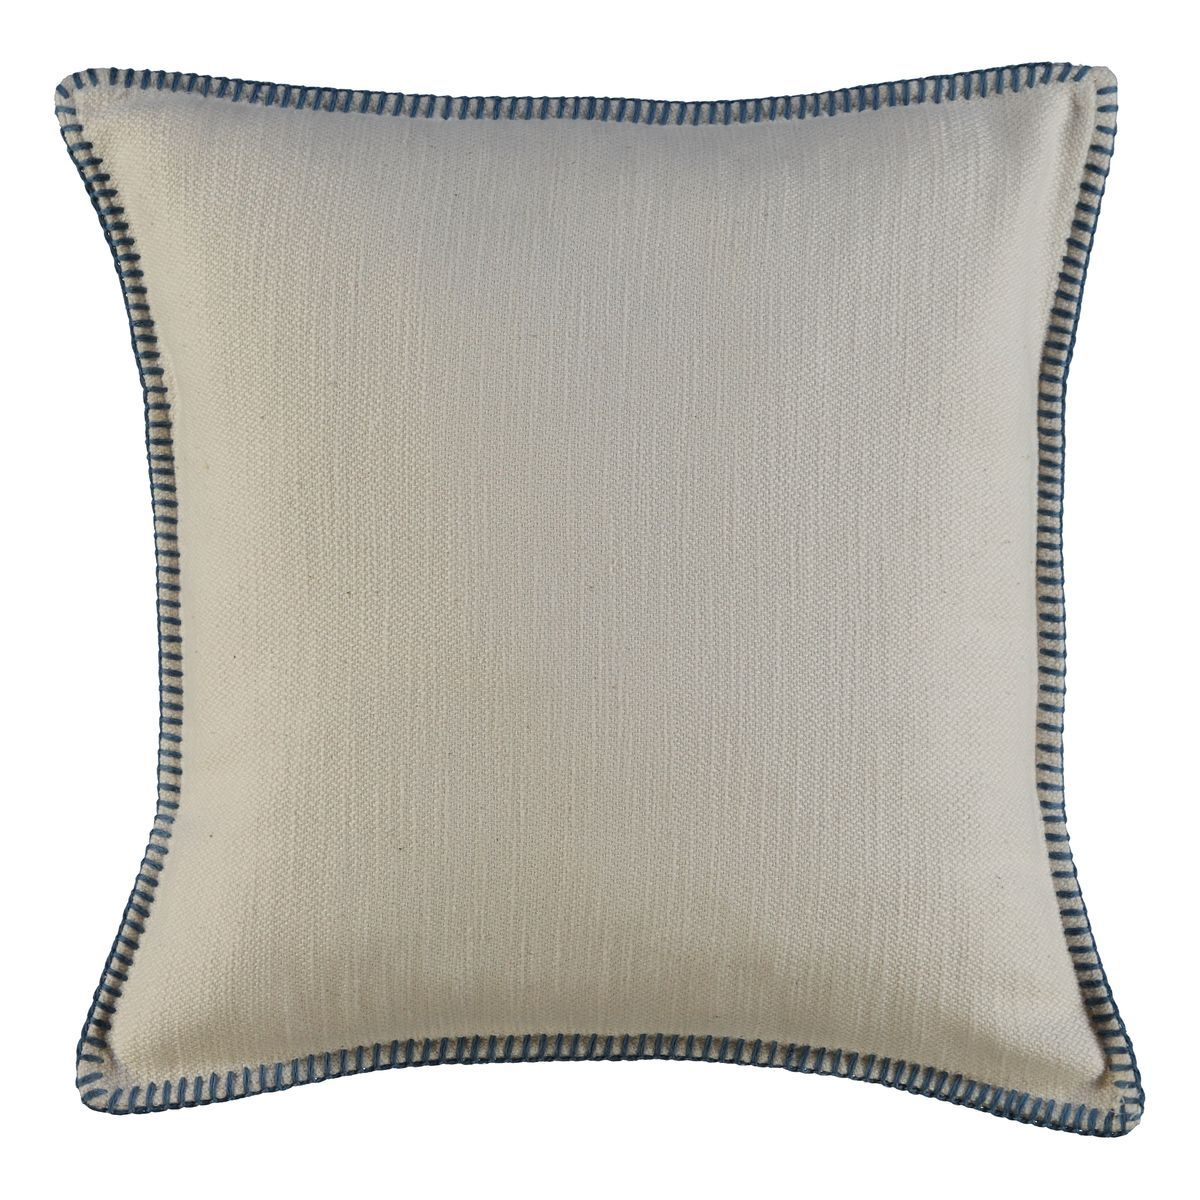 Cushion Cover - Simple / Air Blue Stitched